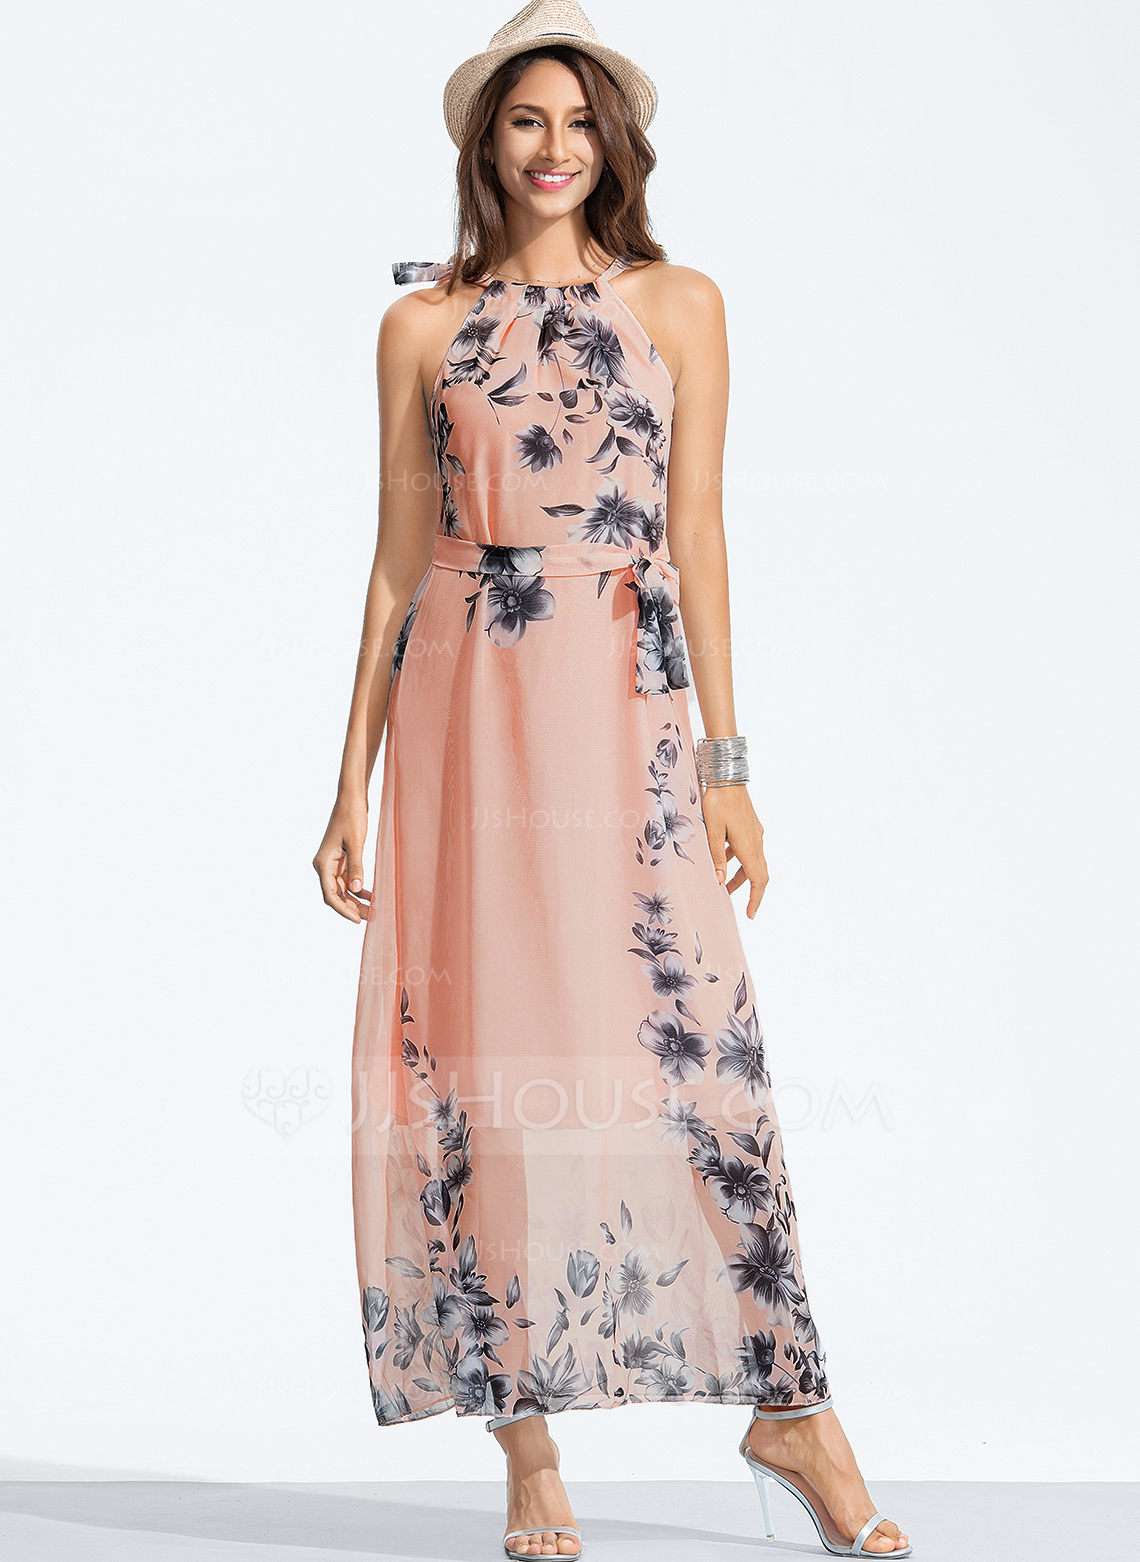 98483e2e79dd Polyester With Print Maxi Dress (199173868) - Fashion Dresses - JJ's ...